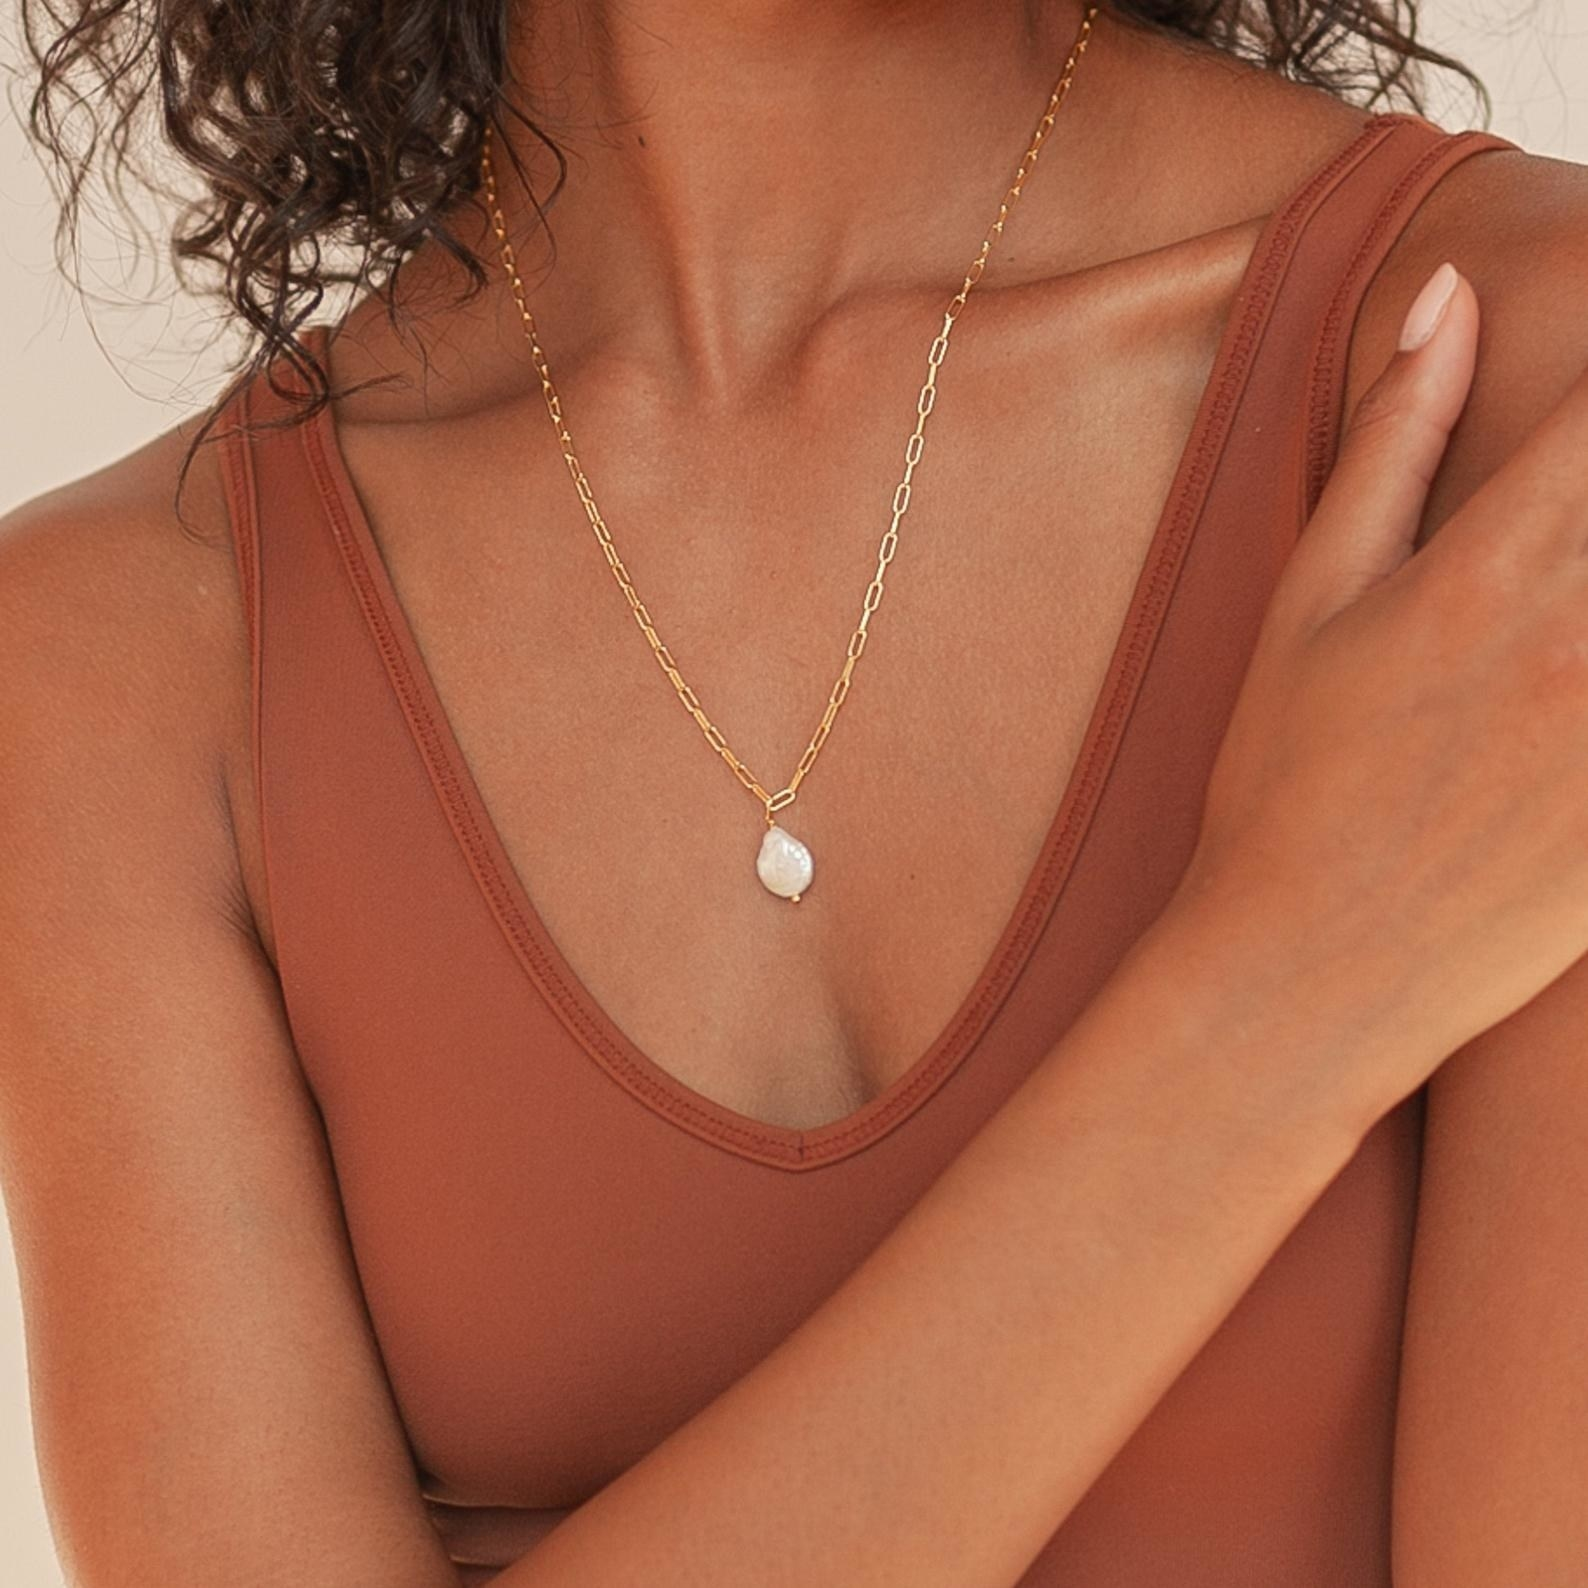 Baroque Pearl Pendant Necklace by Caitlyn Minimalist